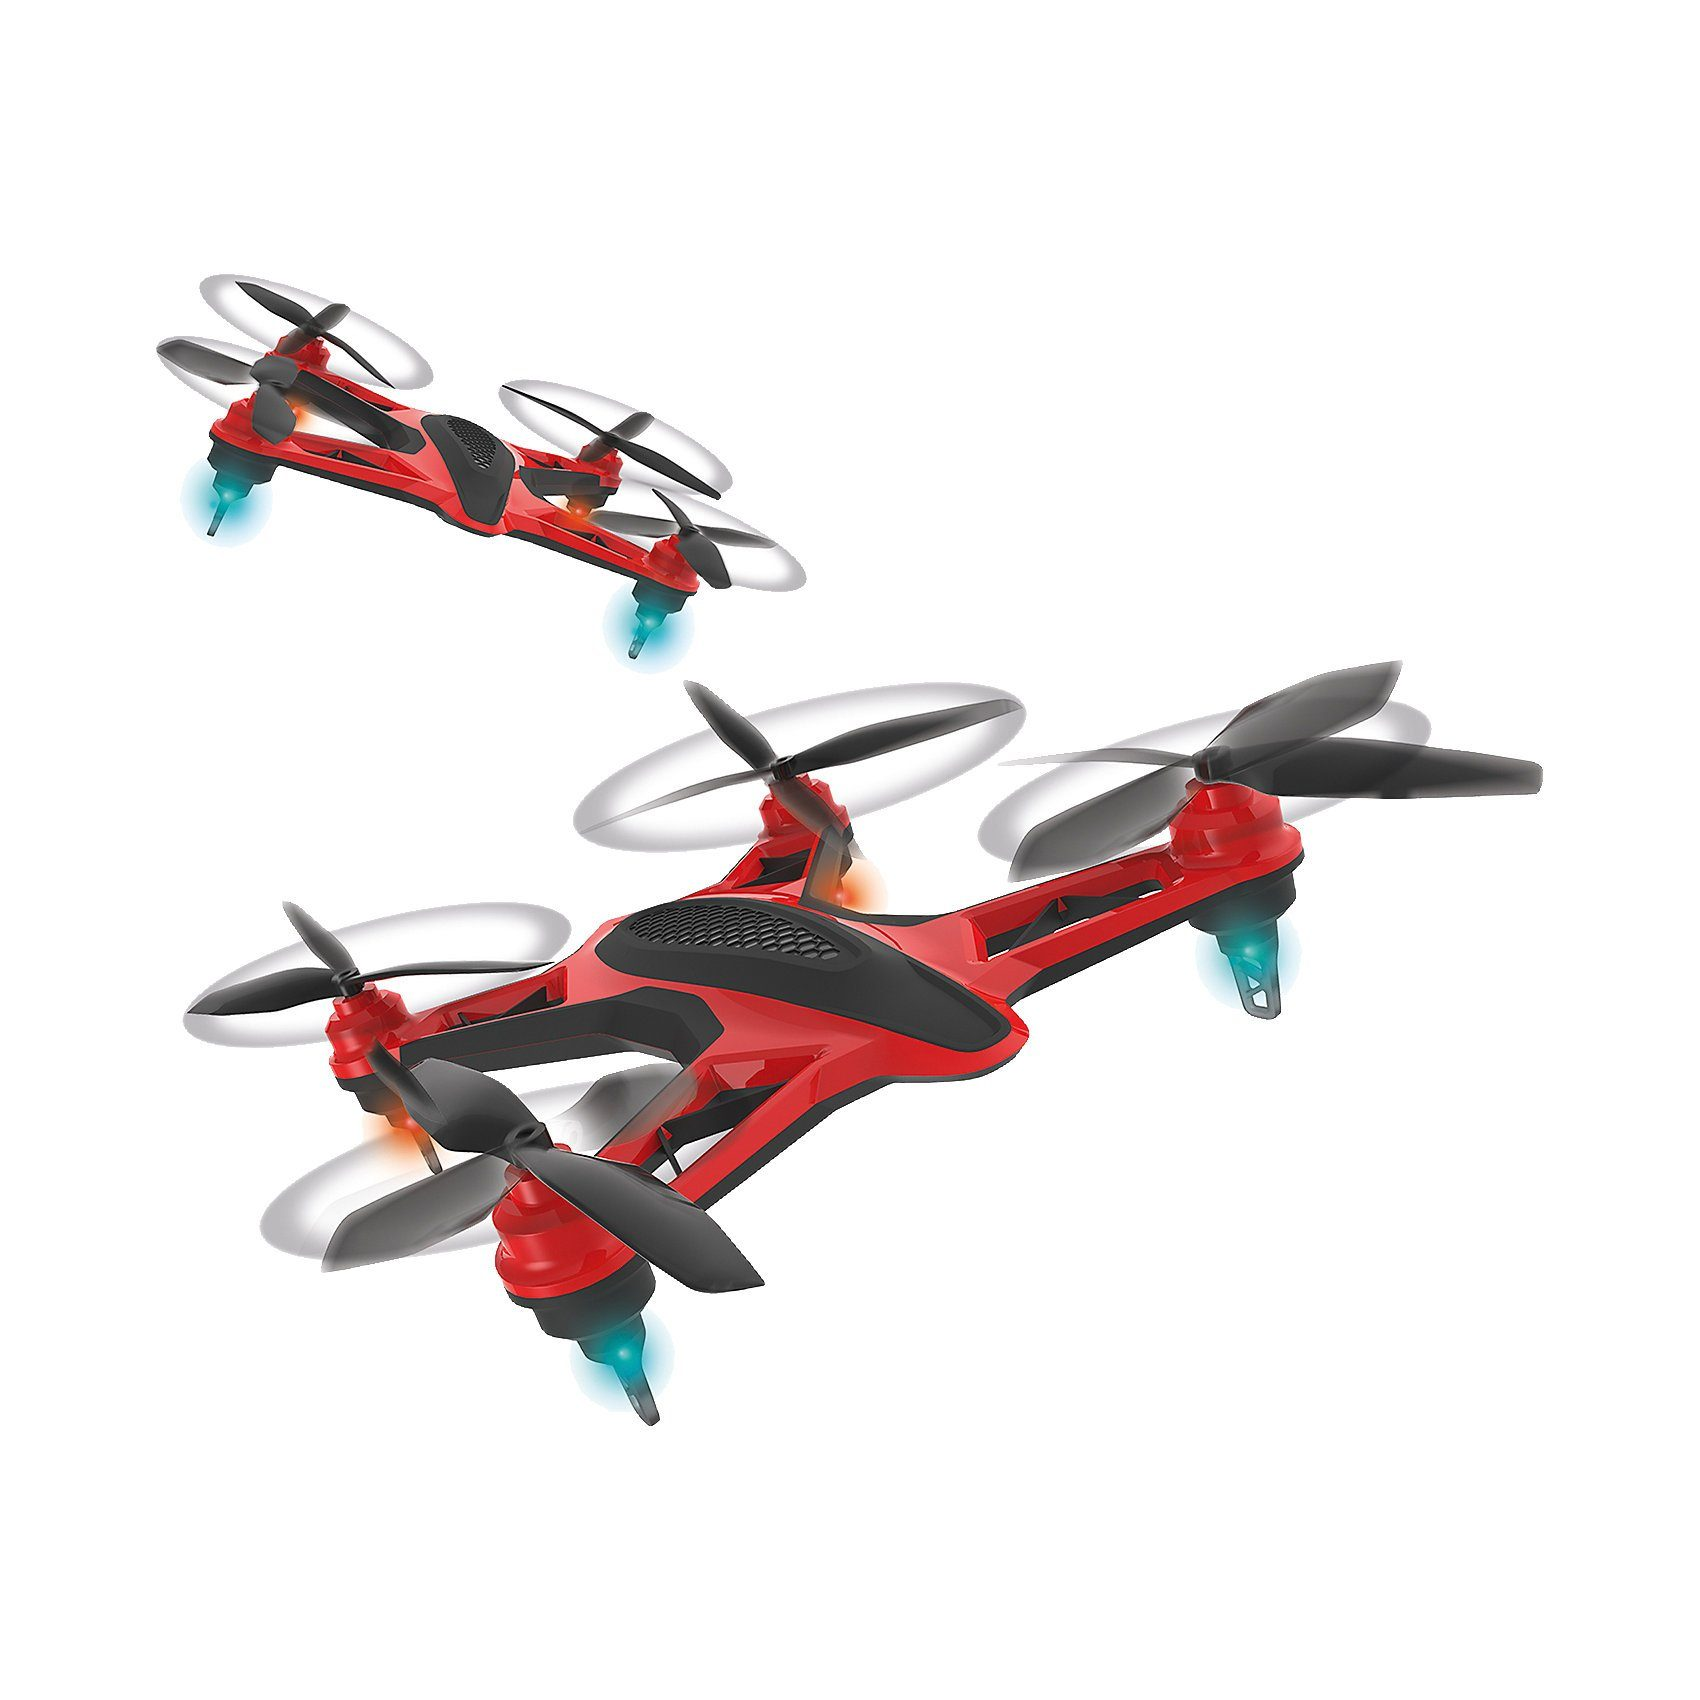 Nikko RC Quadrocopter Air Racer